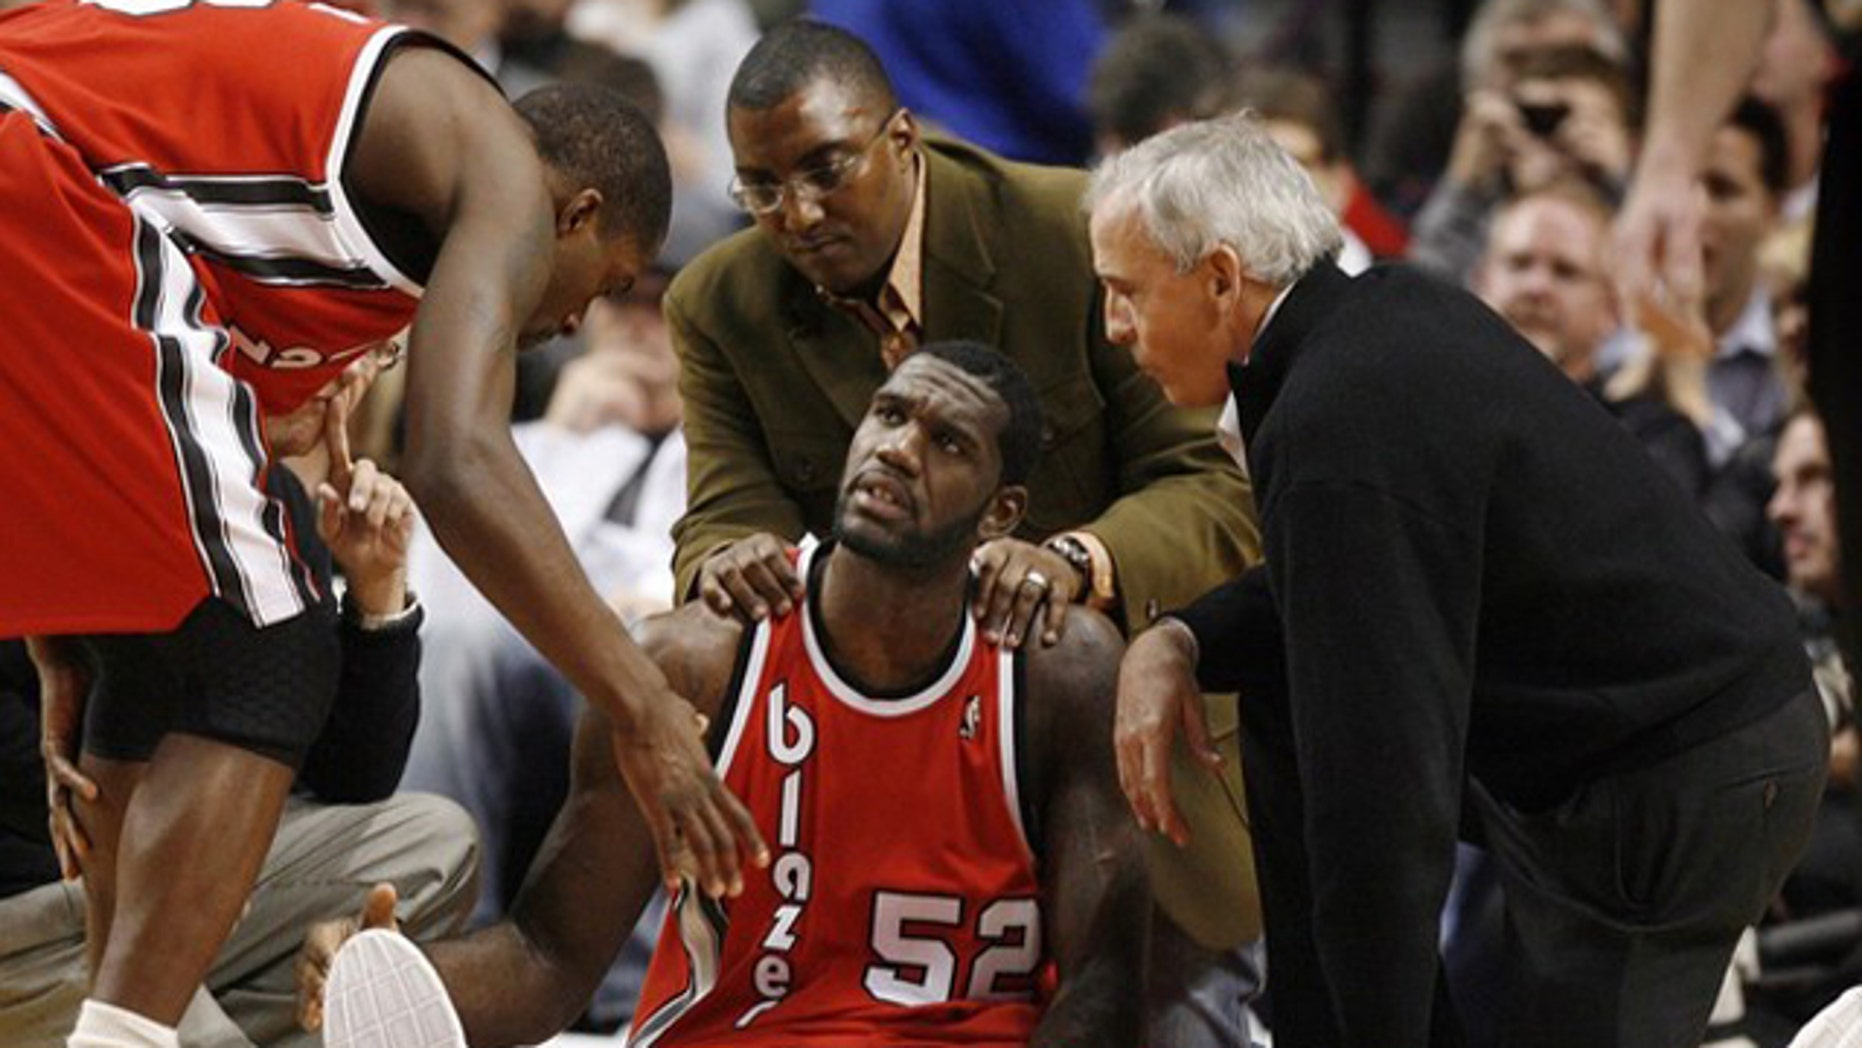 Portland Trail Blazers center Greg Oden (52) receives encouragement from teammate Martell Webster (L) as medical personel attend to his broken left leg during the first quarter of their NBA basketball game in Portland, Oregon on December 5, 2009.